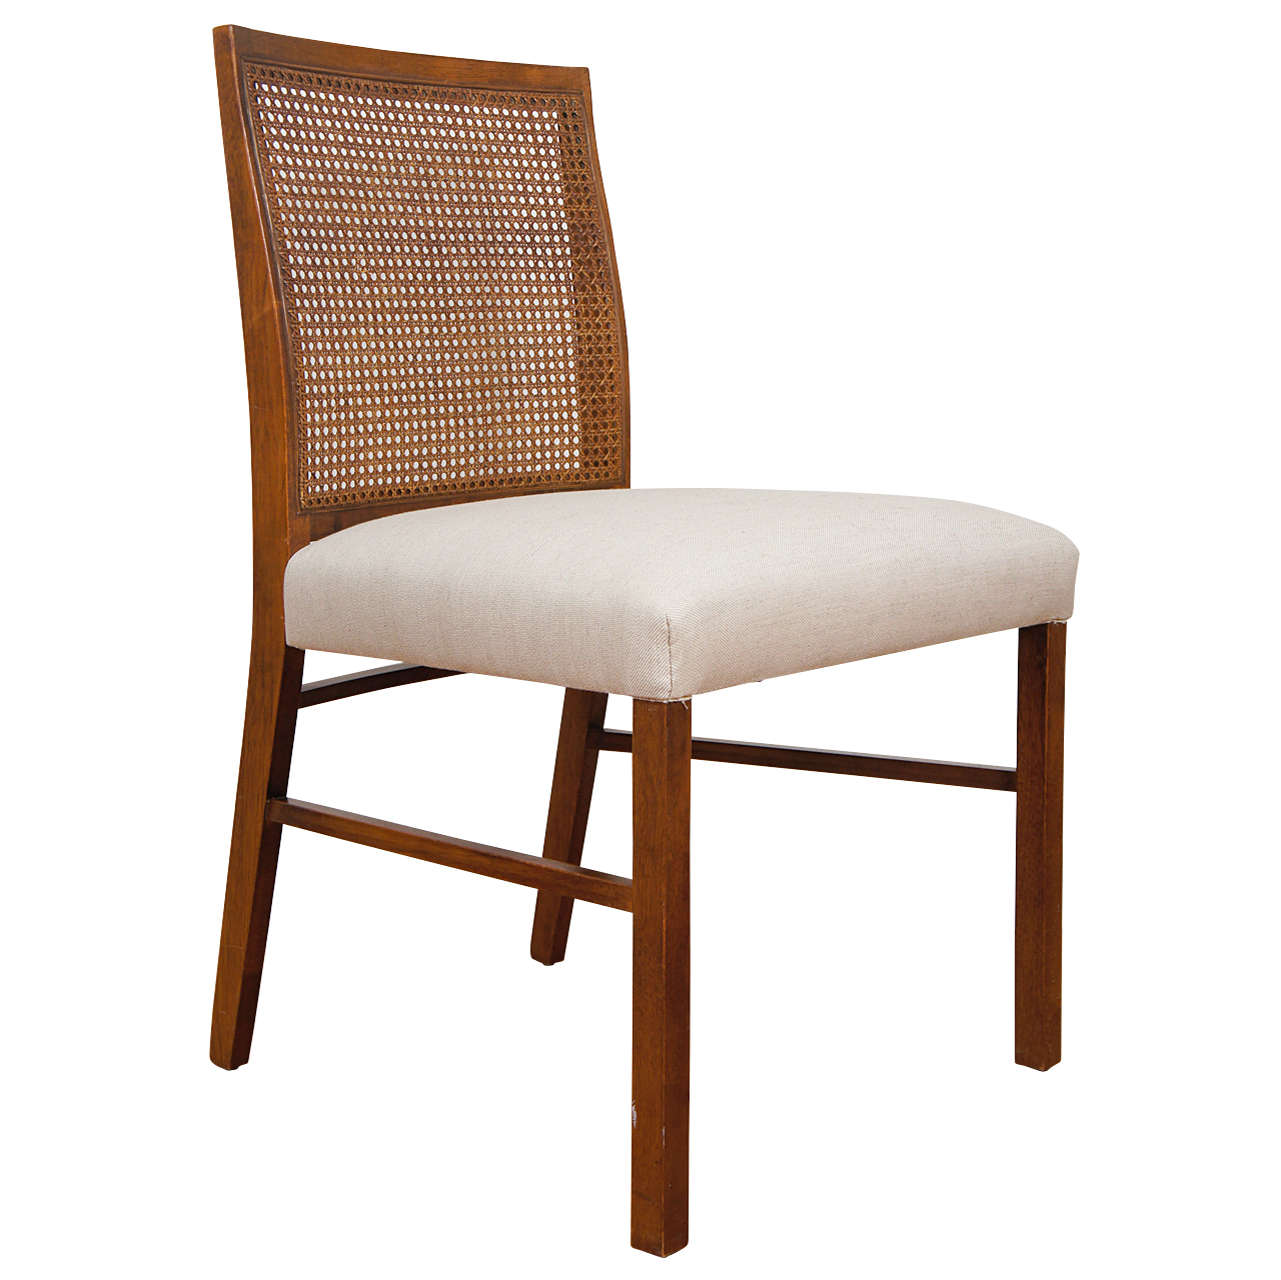 Dining Chair with Caned Back by Drexel Heritage at 1stdibs : X from 1stdibs.com size 1281 x 1280 jpeg 119kB